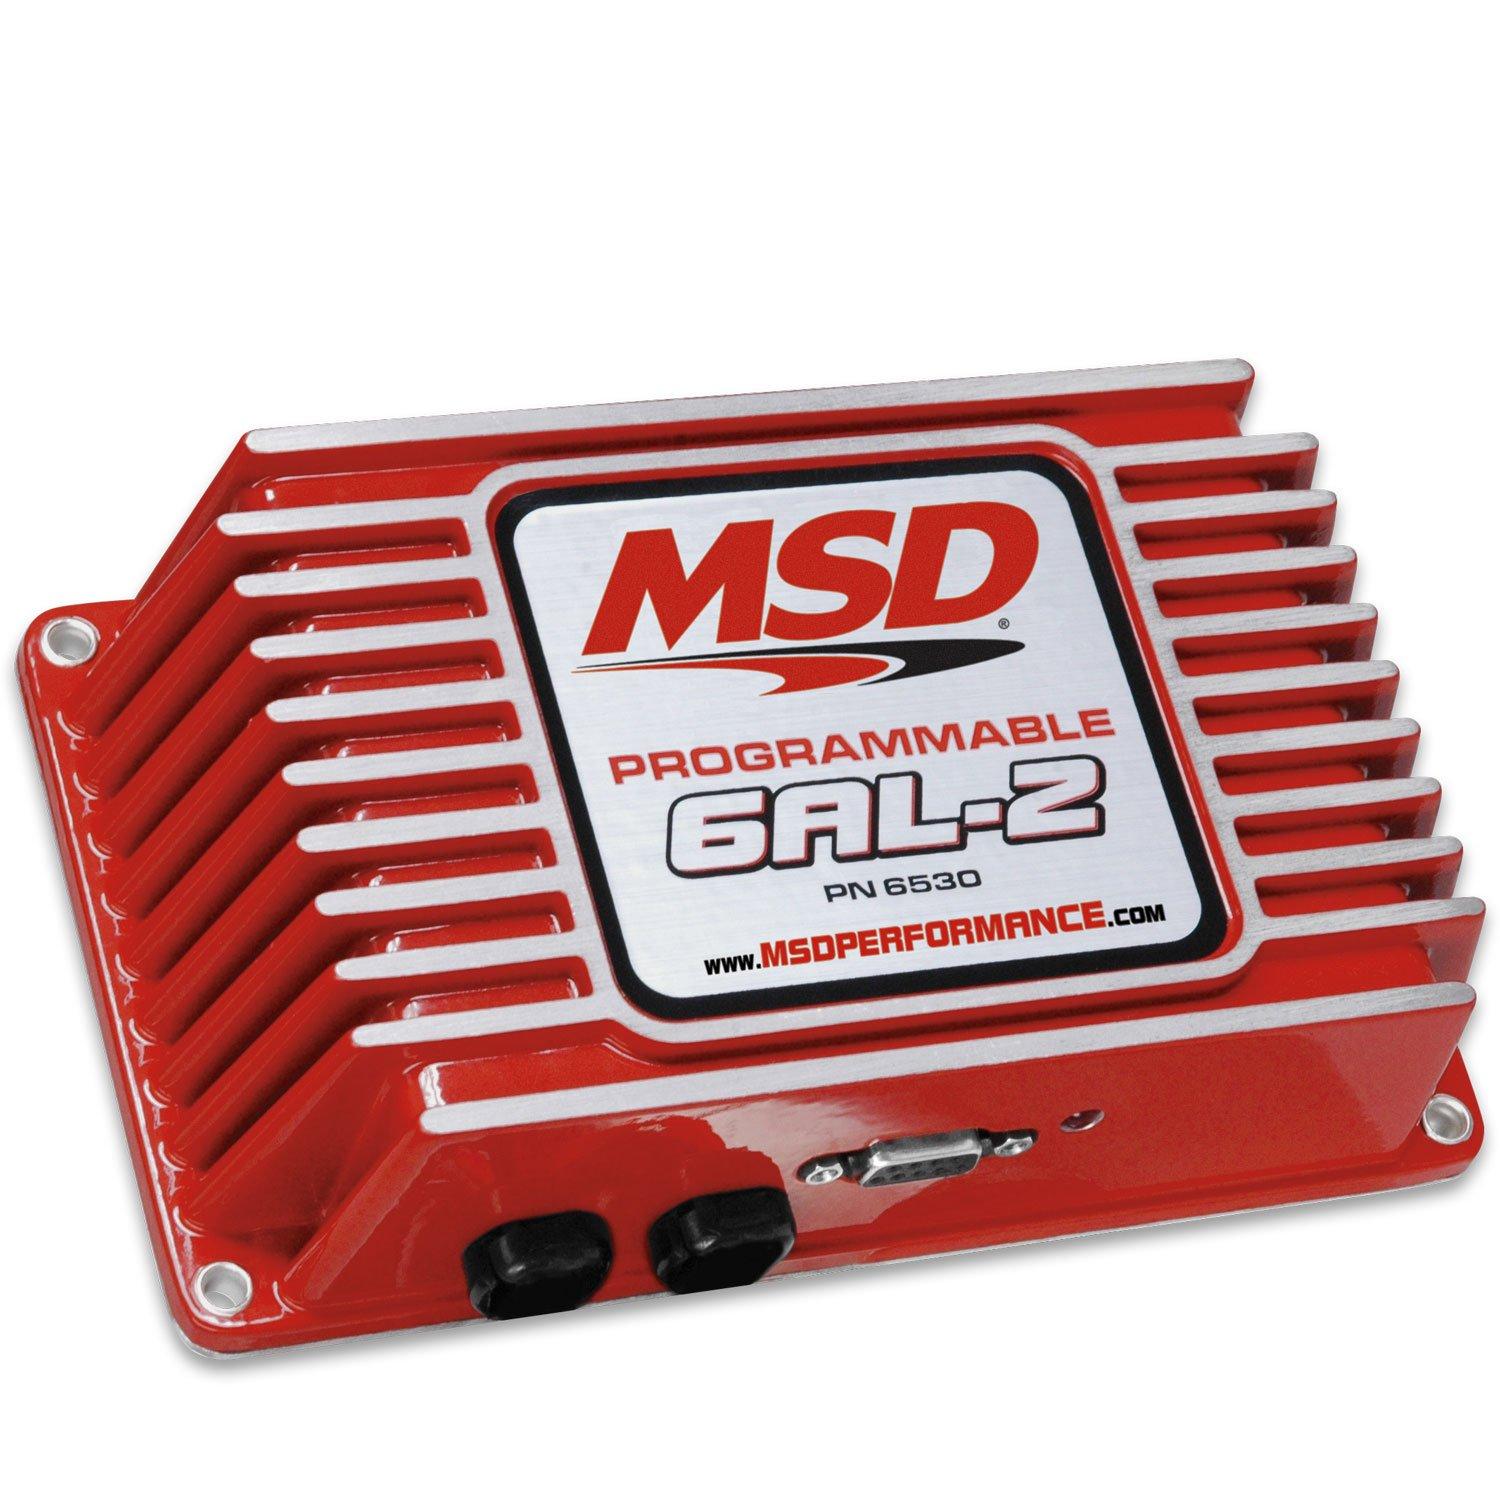 msd 6530 msd digital programmable 6al 26530 msd digital programmable 6al 2 image